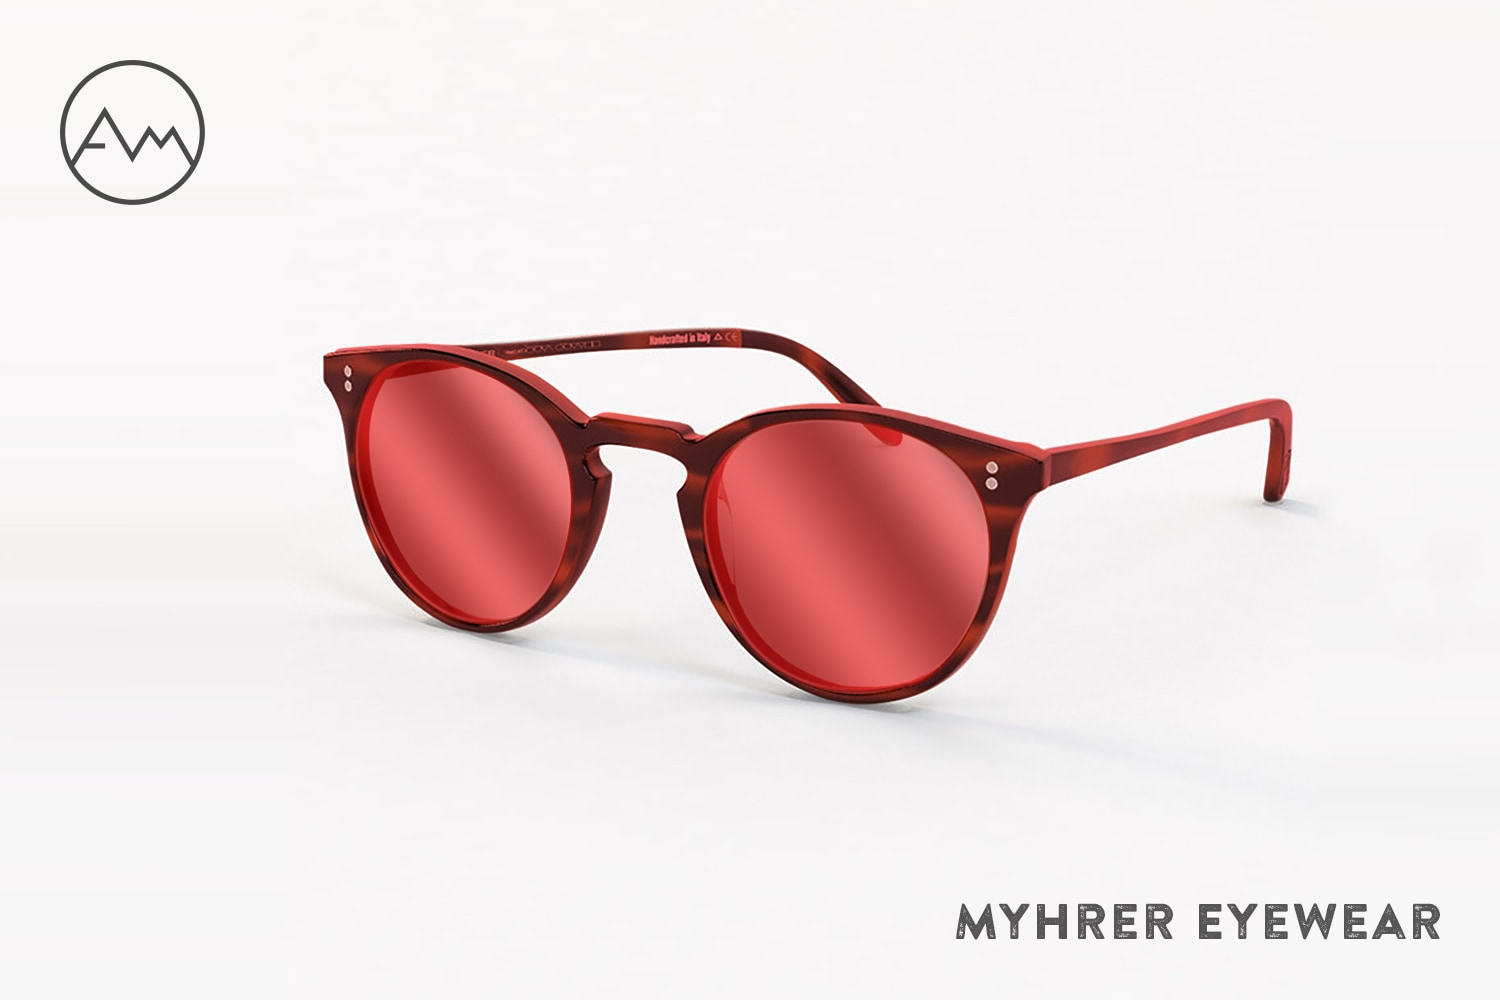 Myhrer Eyewear: Product Design - Creative Direction, Art Direction, Product Design